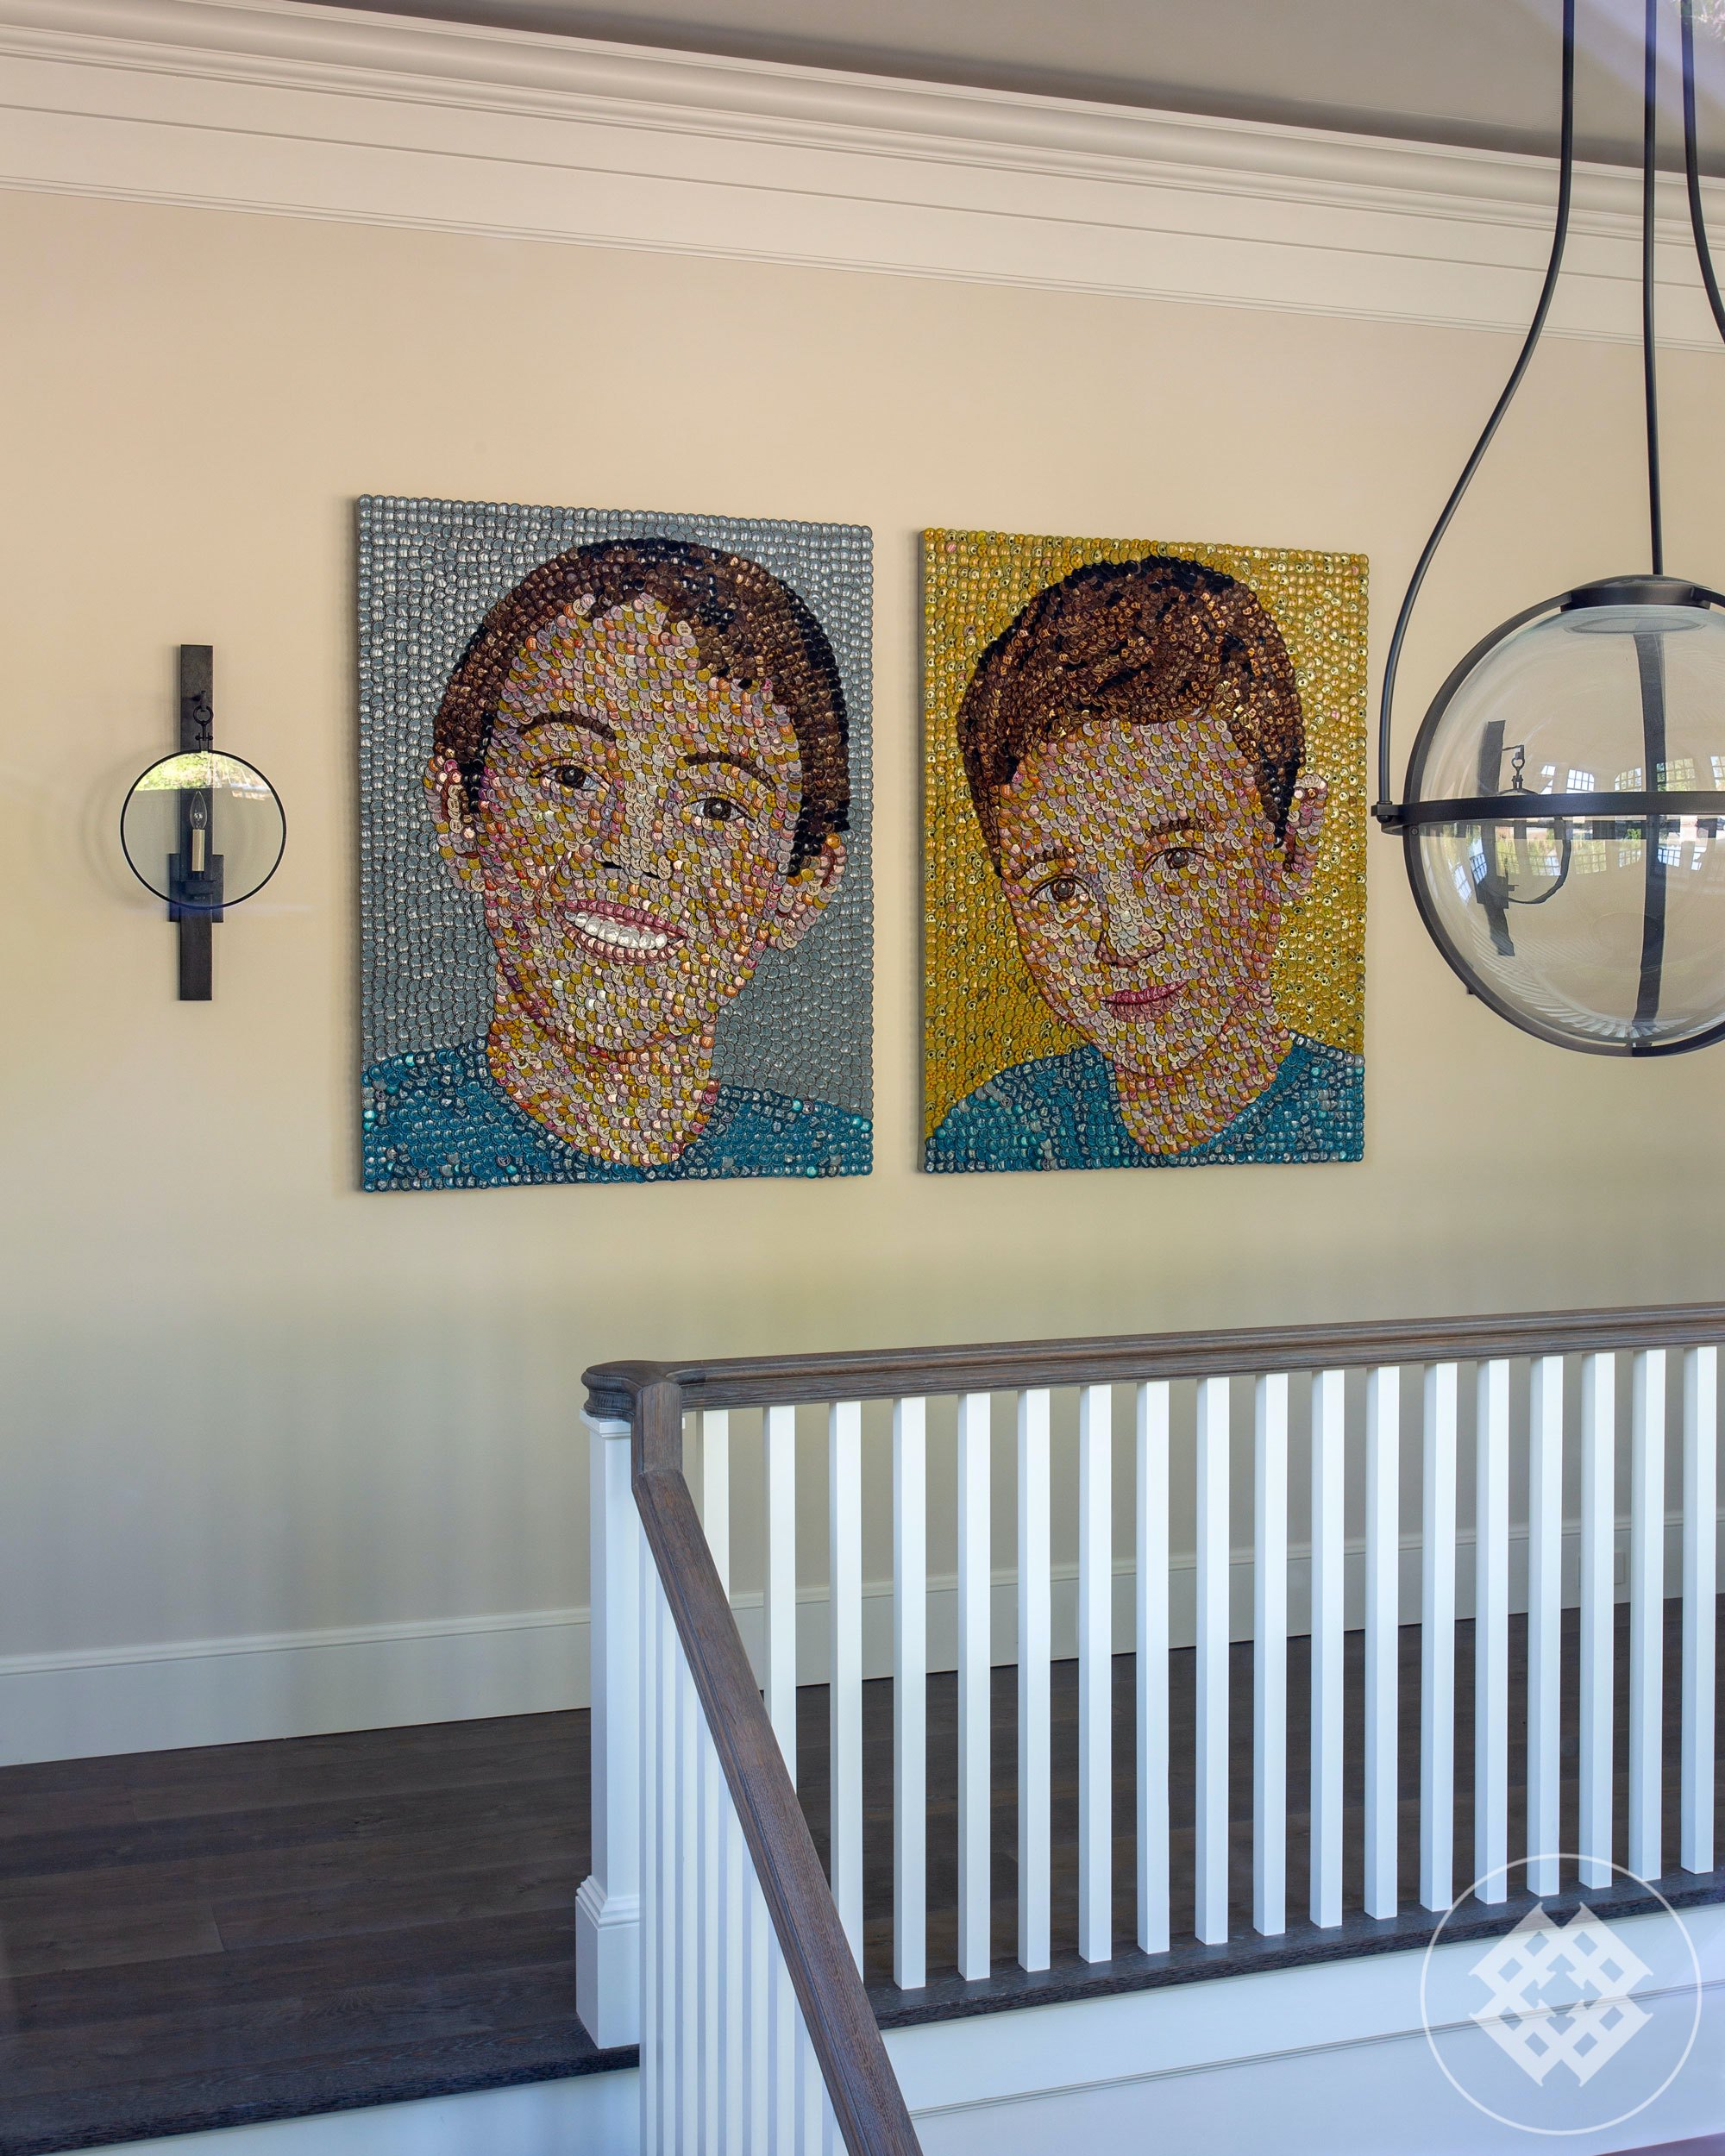 kkl-custom-bottlecap-portraits-framed-by-iron-sconces-and-pendants.jpg